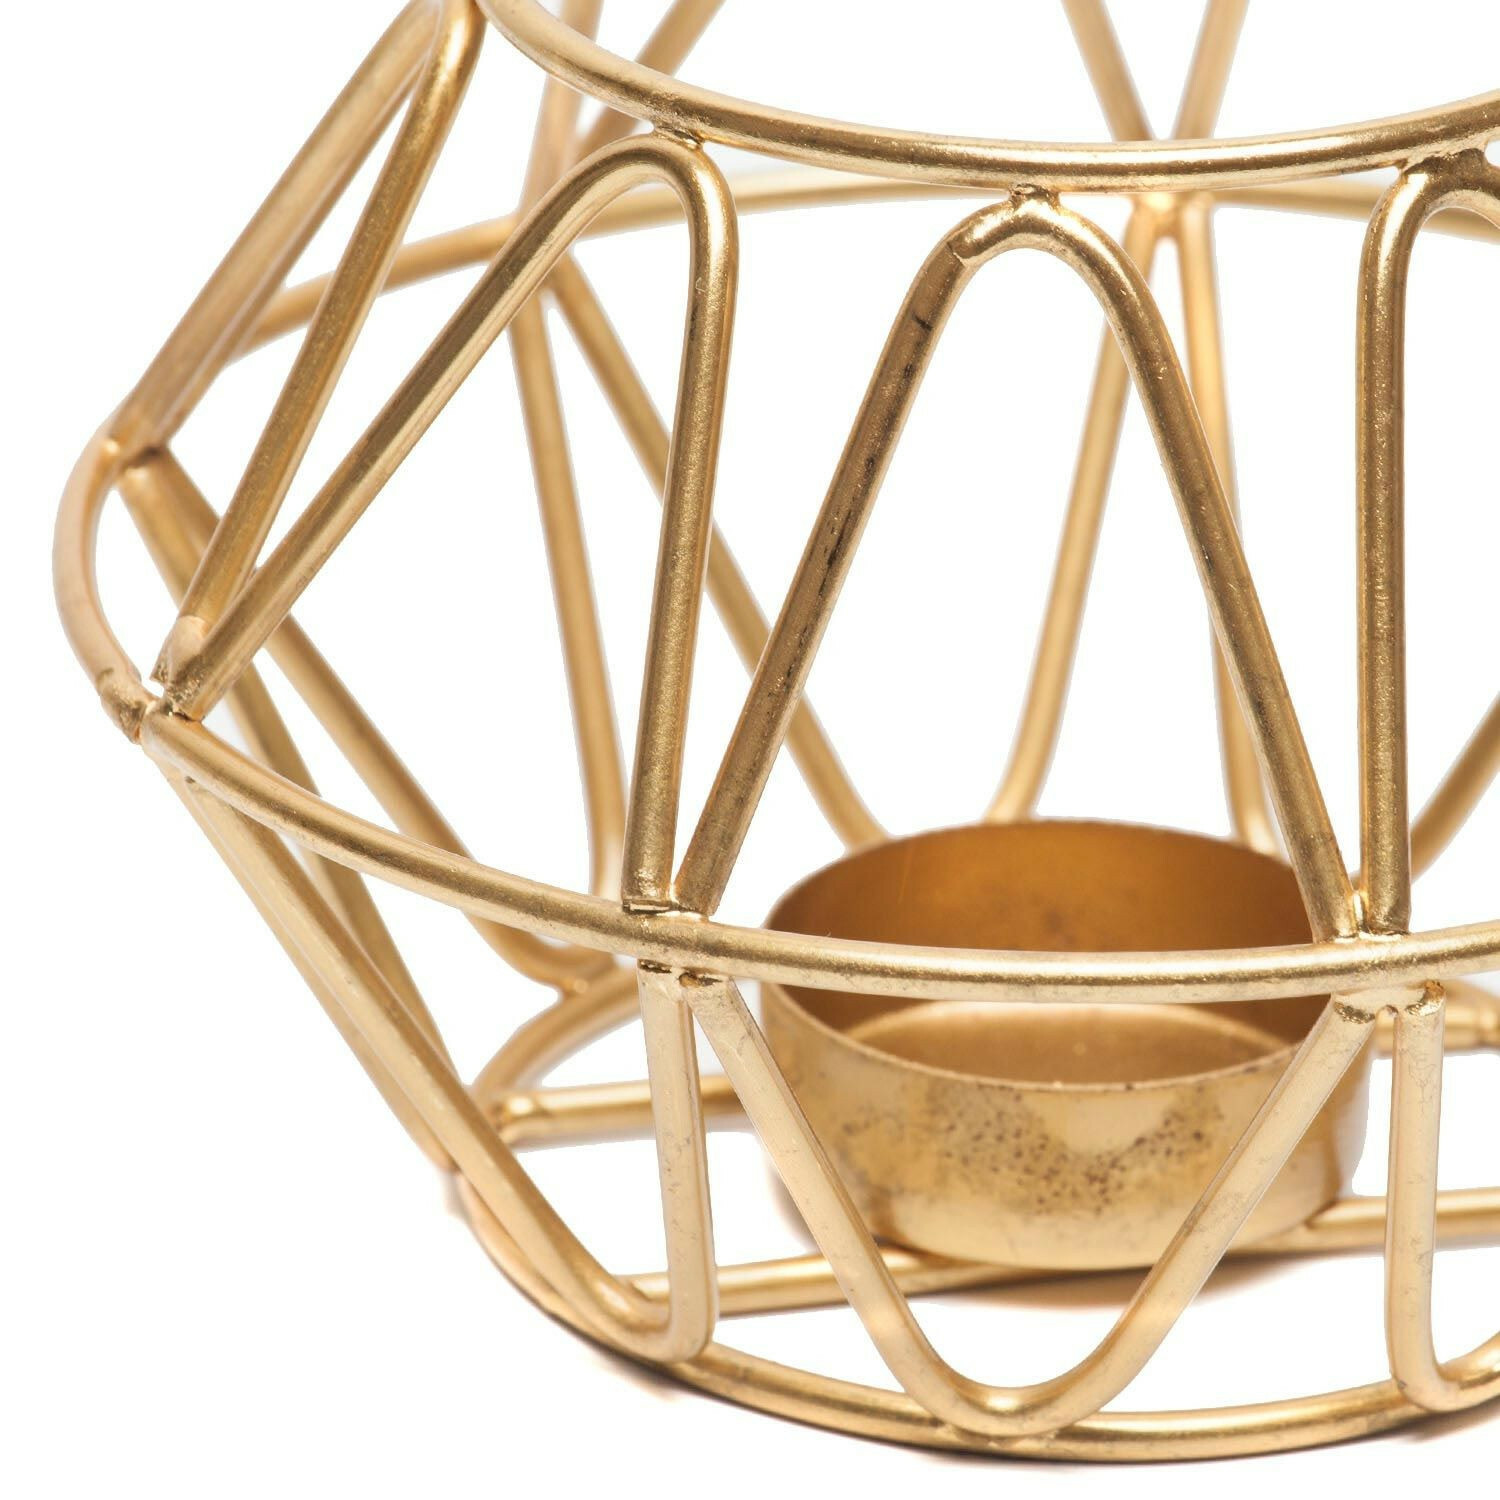 GOLD COZY CANDLEHOLDER